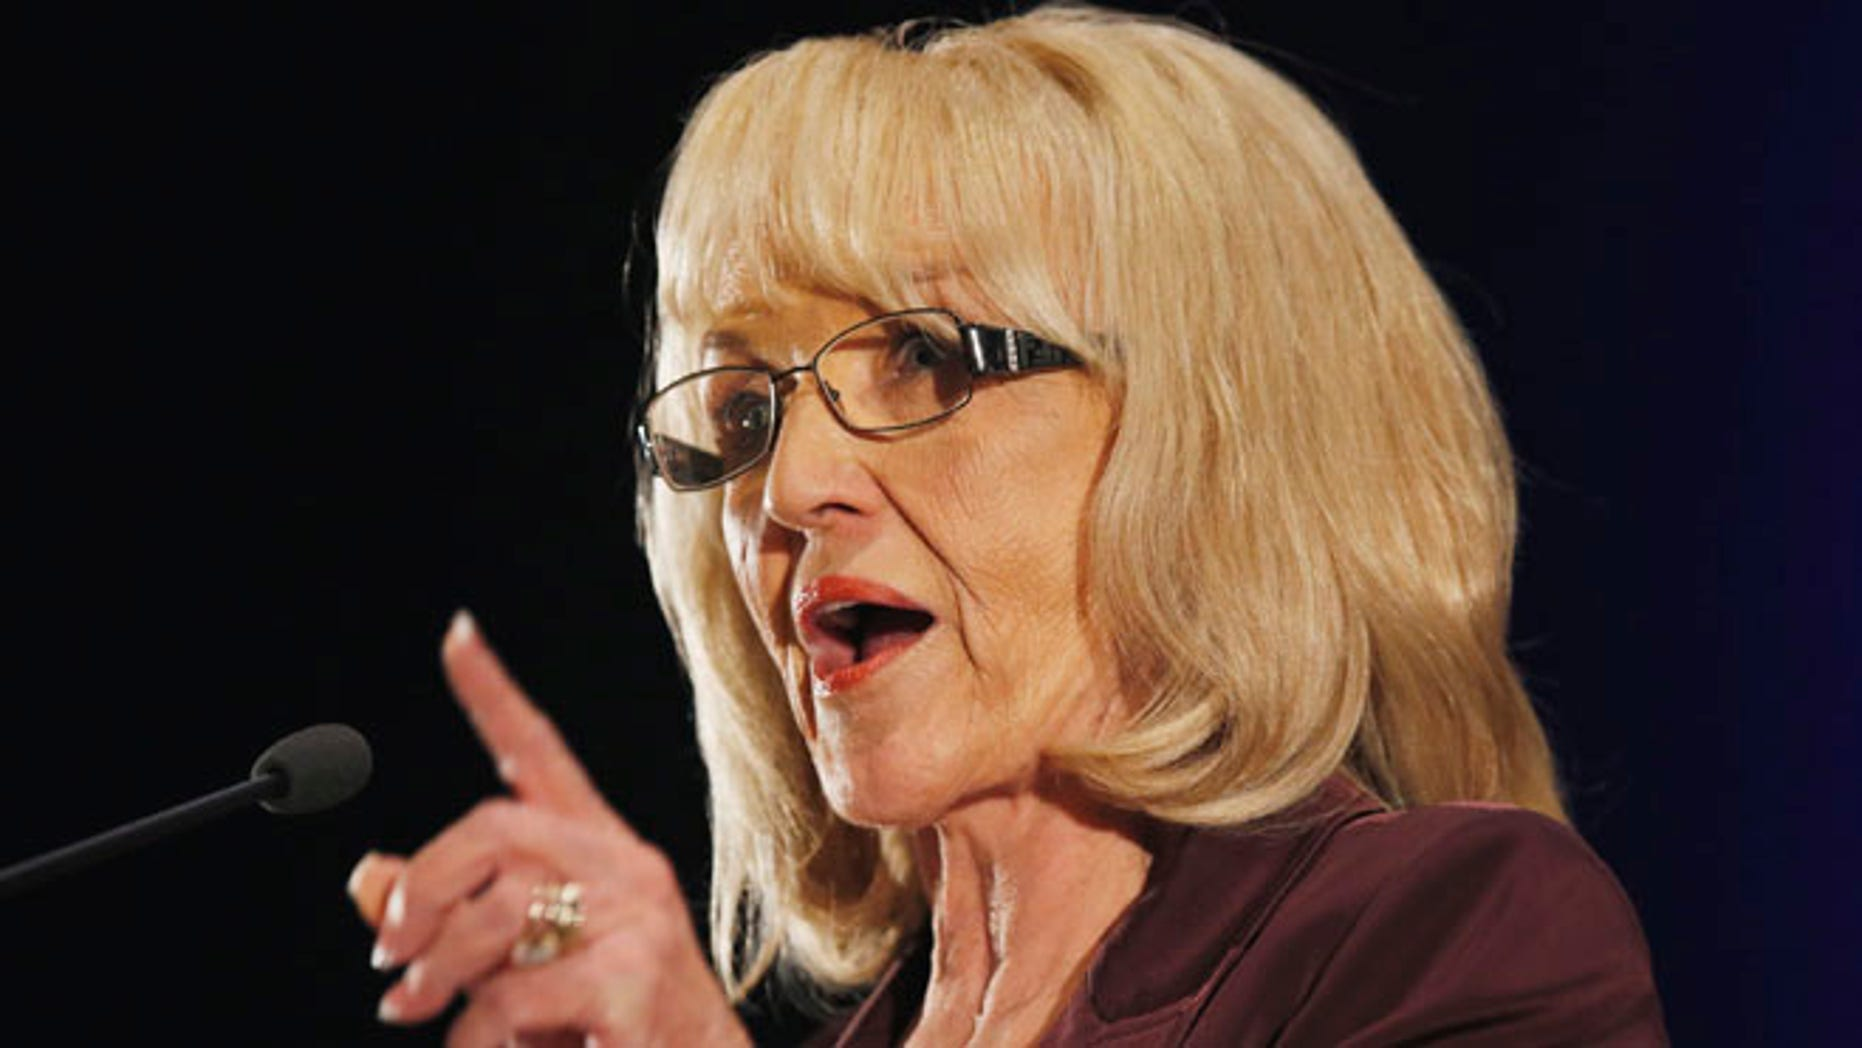 Arizona Gov. Jan Brewer speaks at the annual Arizona Chamber of Commerce and Industry legislative luncheon Friday, Jan. 10, 2014, in Phoenix.